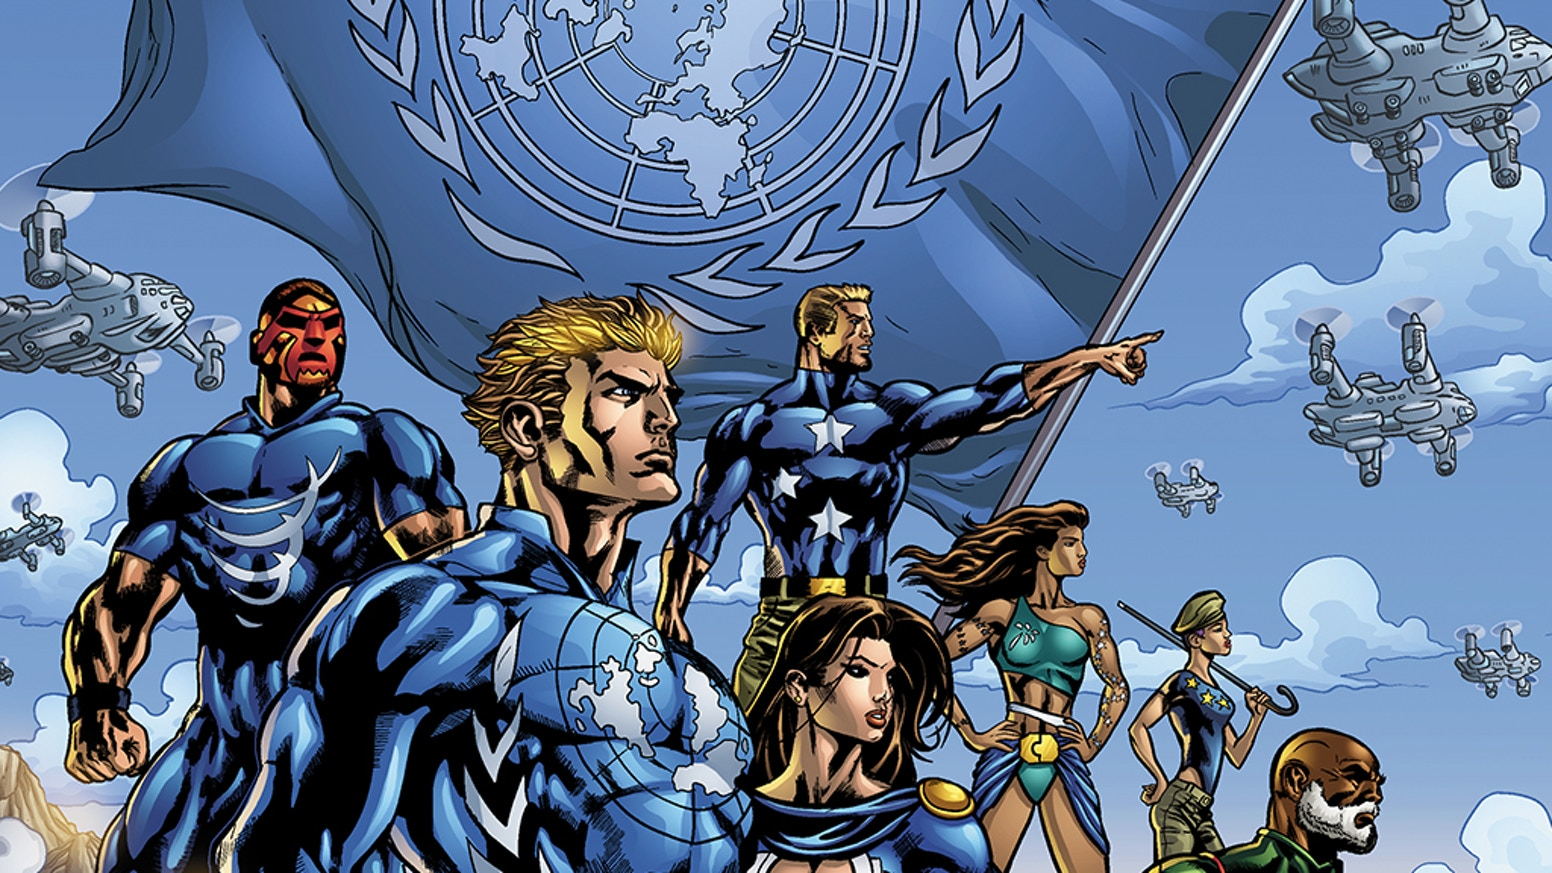 SUPER HUMANS NOW CONTROL THE U.N. AND WITH IT THE WORLD.